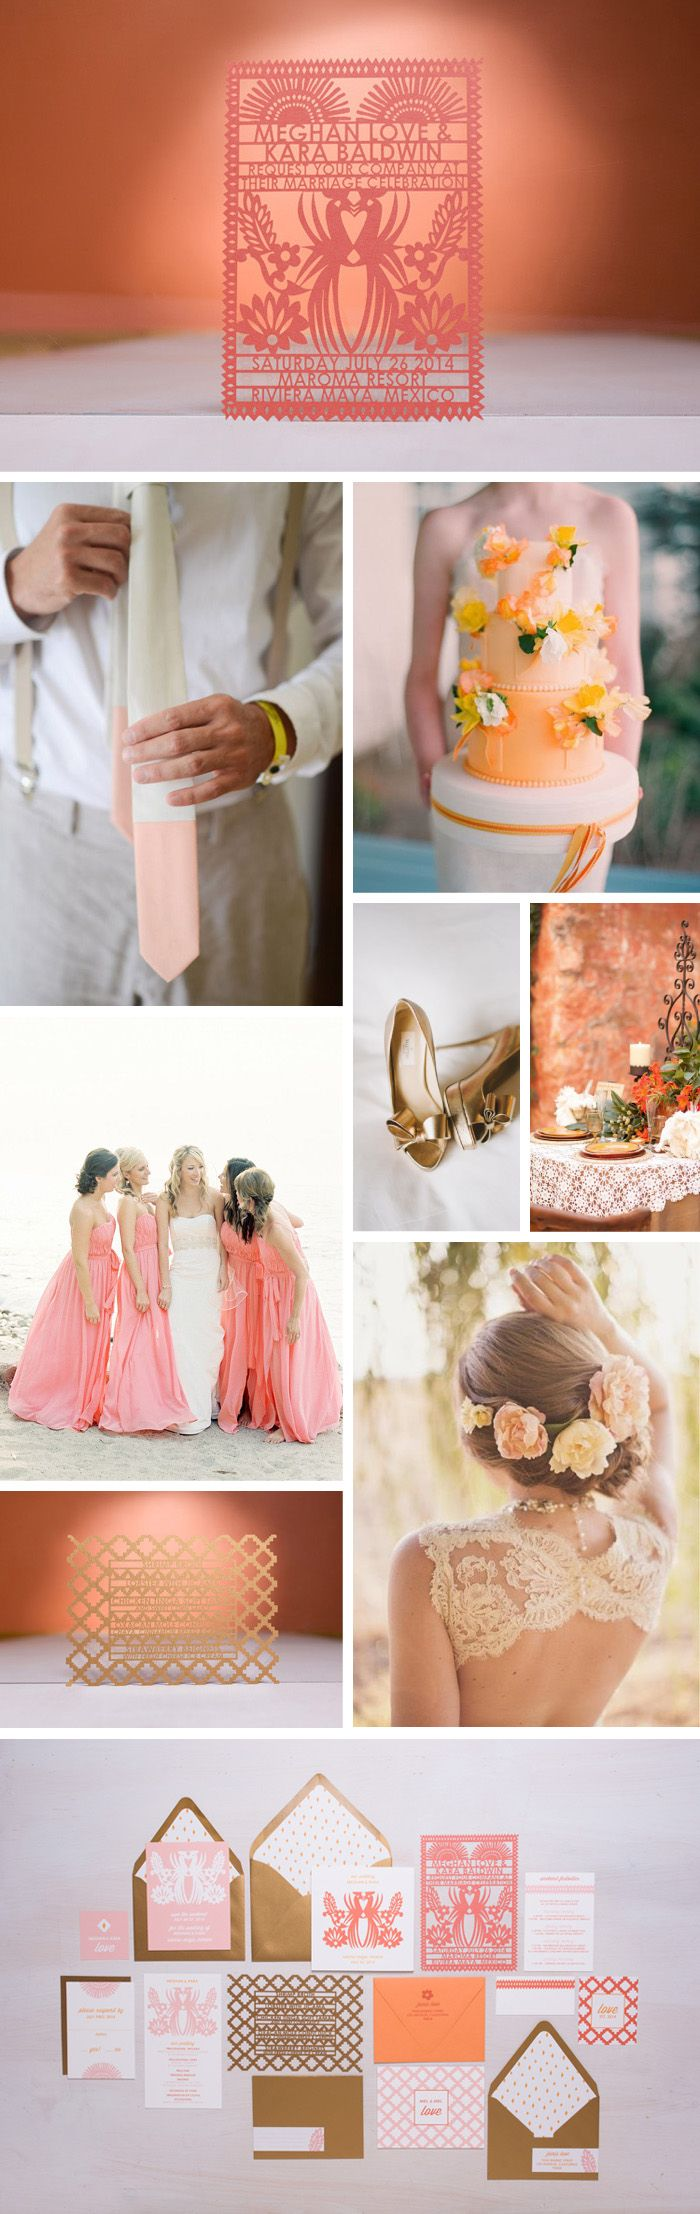 Mayan wedding inspiration featuring Laser Cut invitations by Avie Designs: www.aviedesigns.com